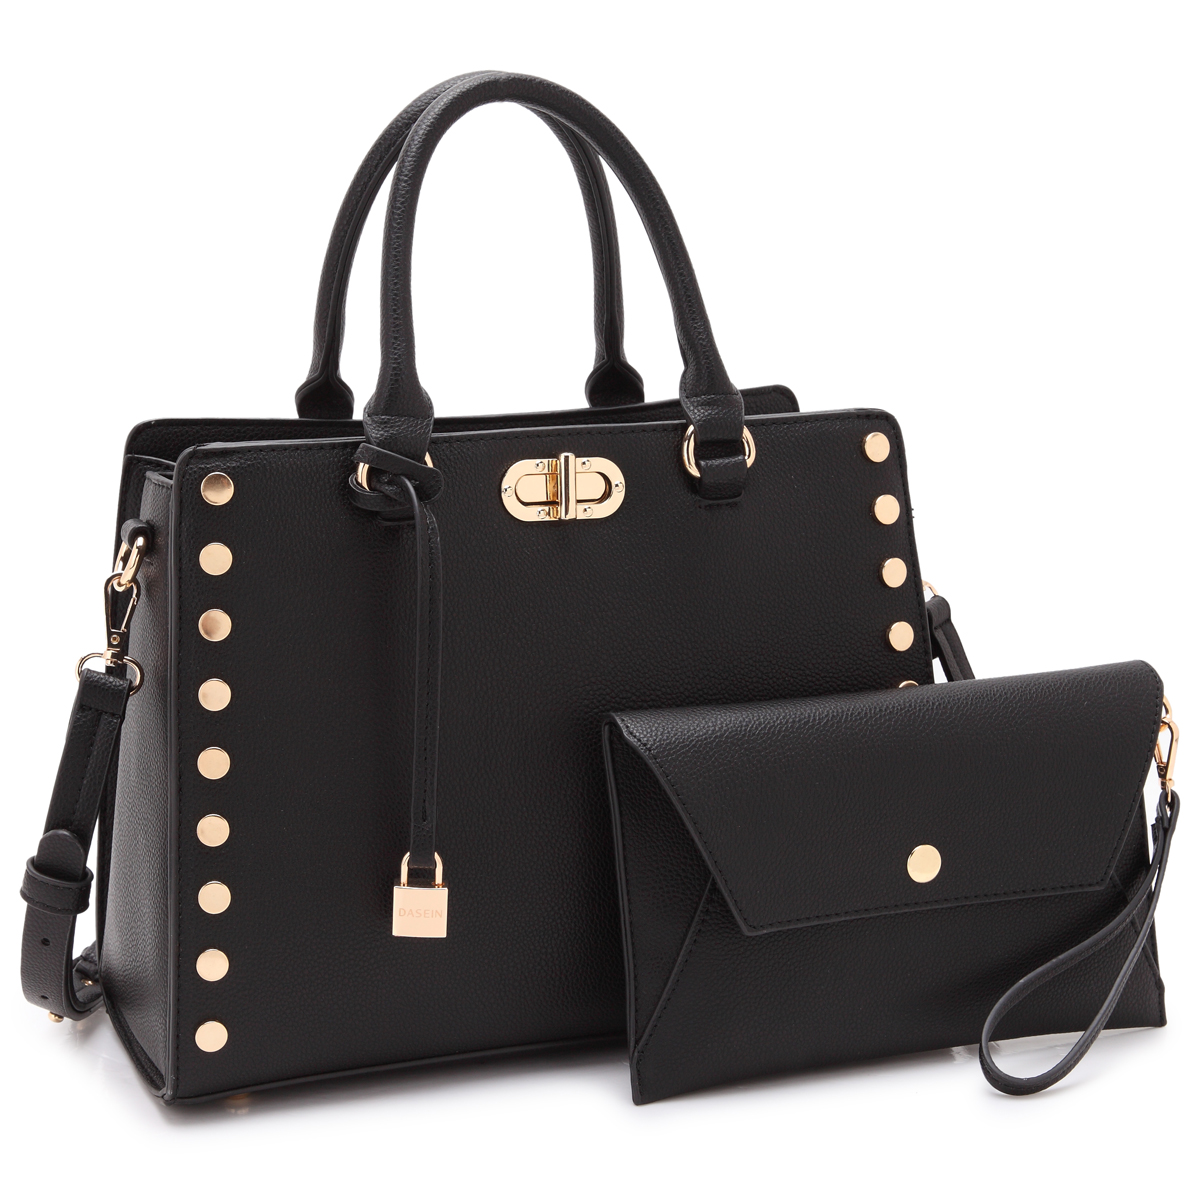 Dasein Faux Leather Satchel with Twist Lock Front Compartment, Gold Studs on both sides, Dangling Padlock deco, and with Matching Wristlet